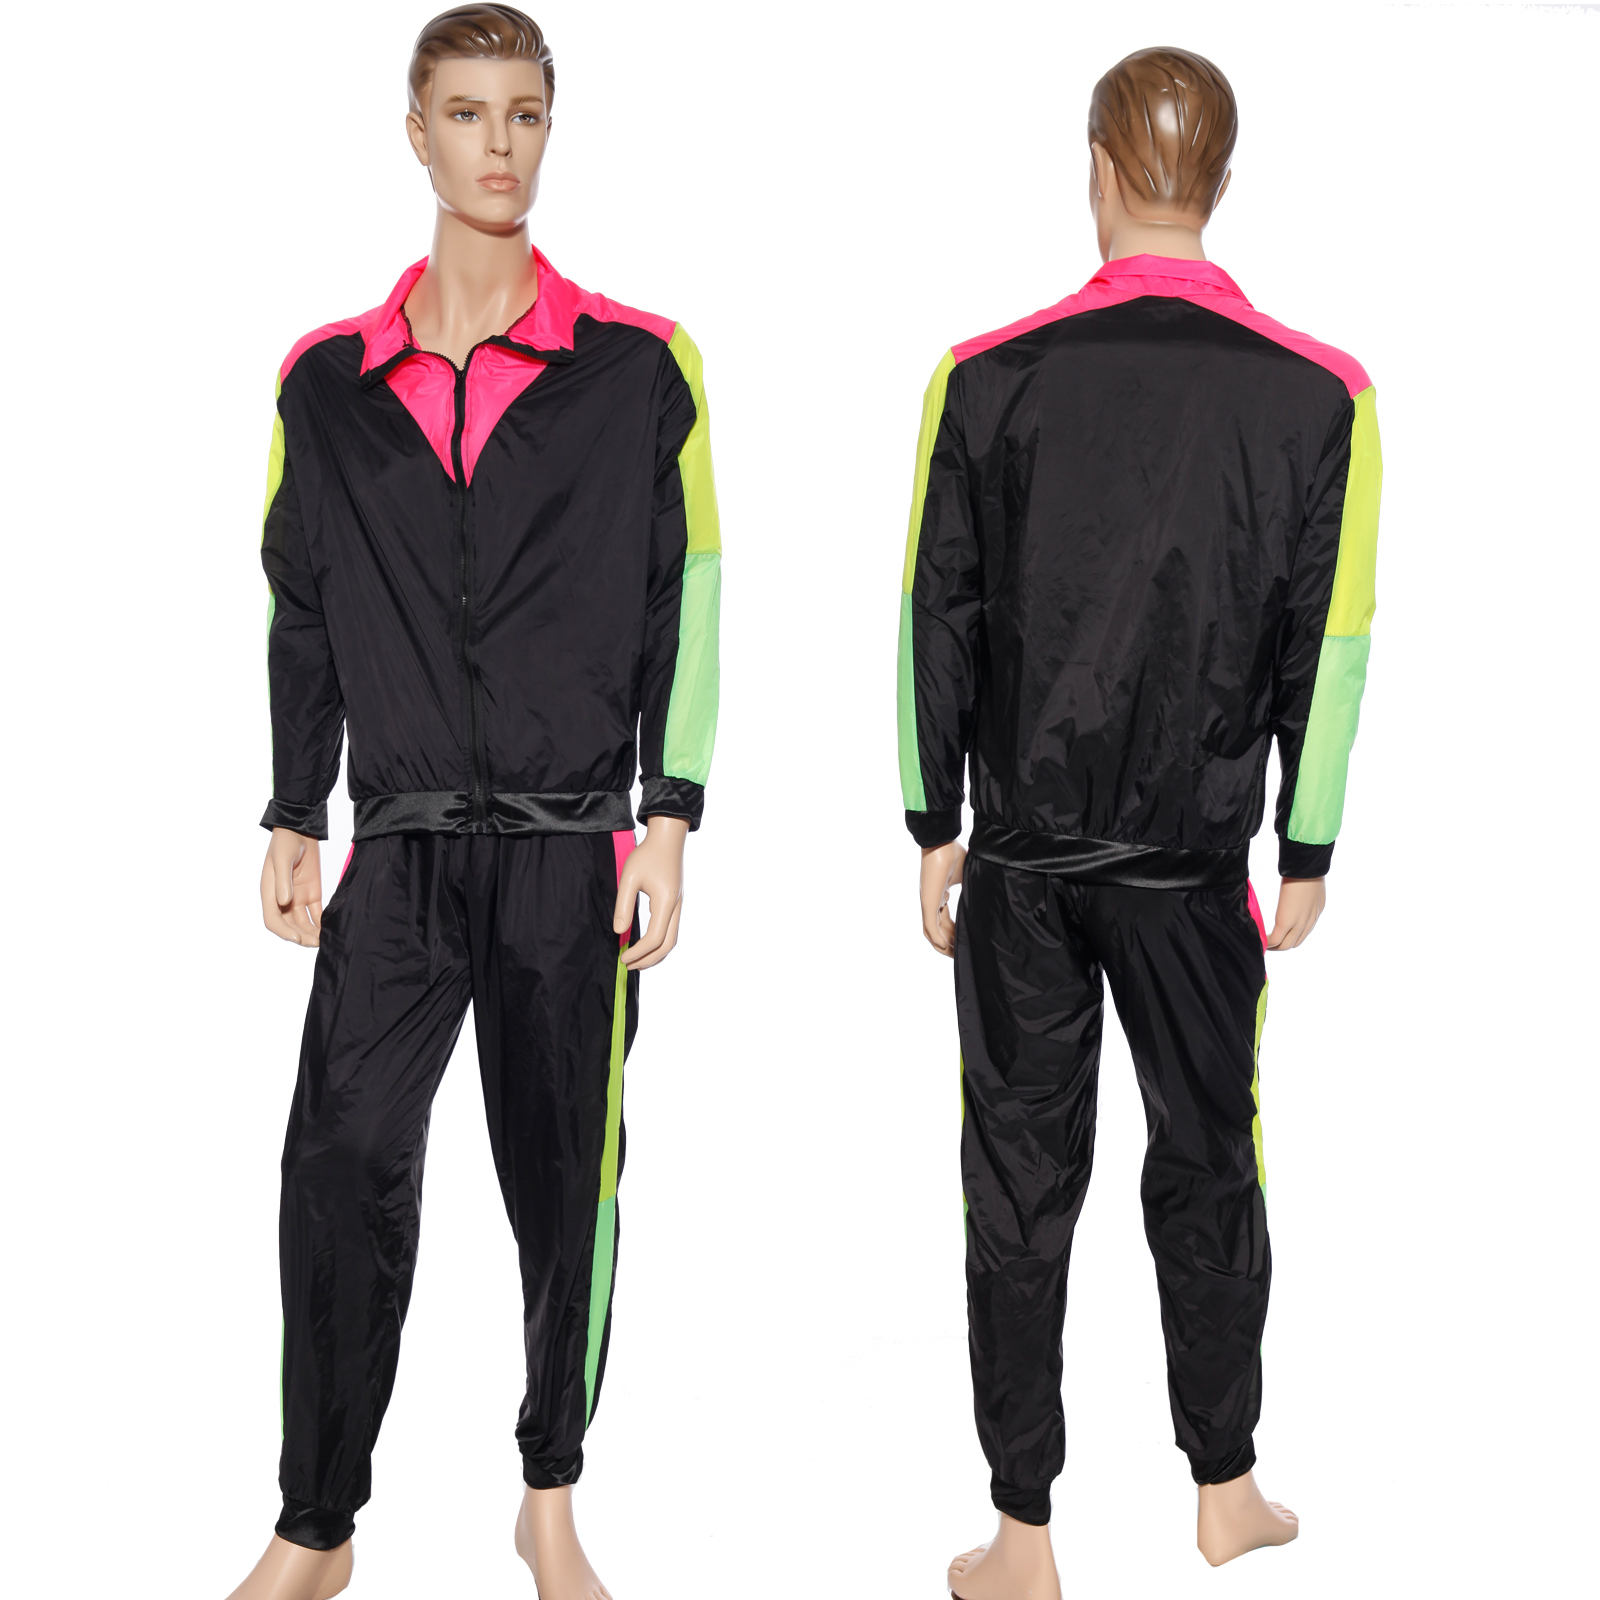 Survetement deguisement costume tenue homme femme annee 80 hip hop breakdance ebay - Annee 80 homme ...